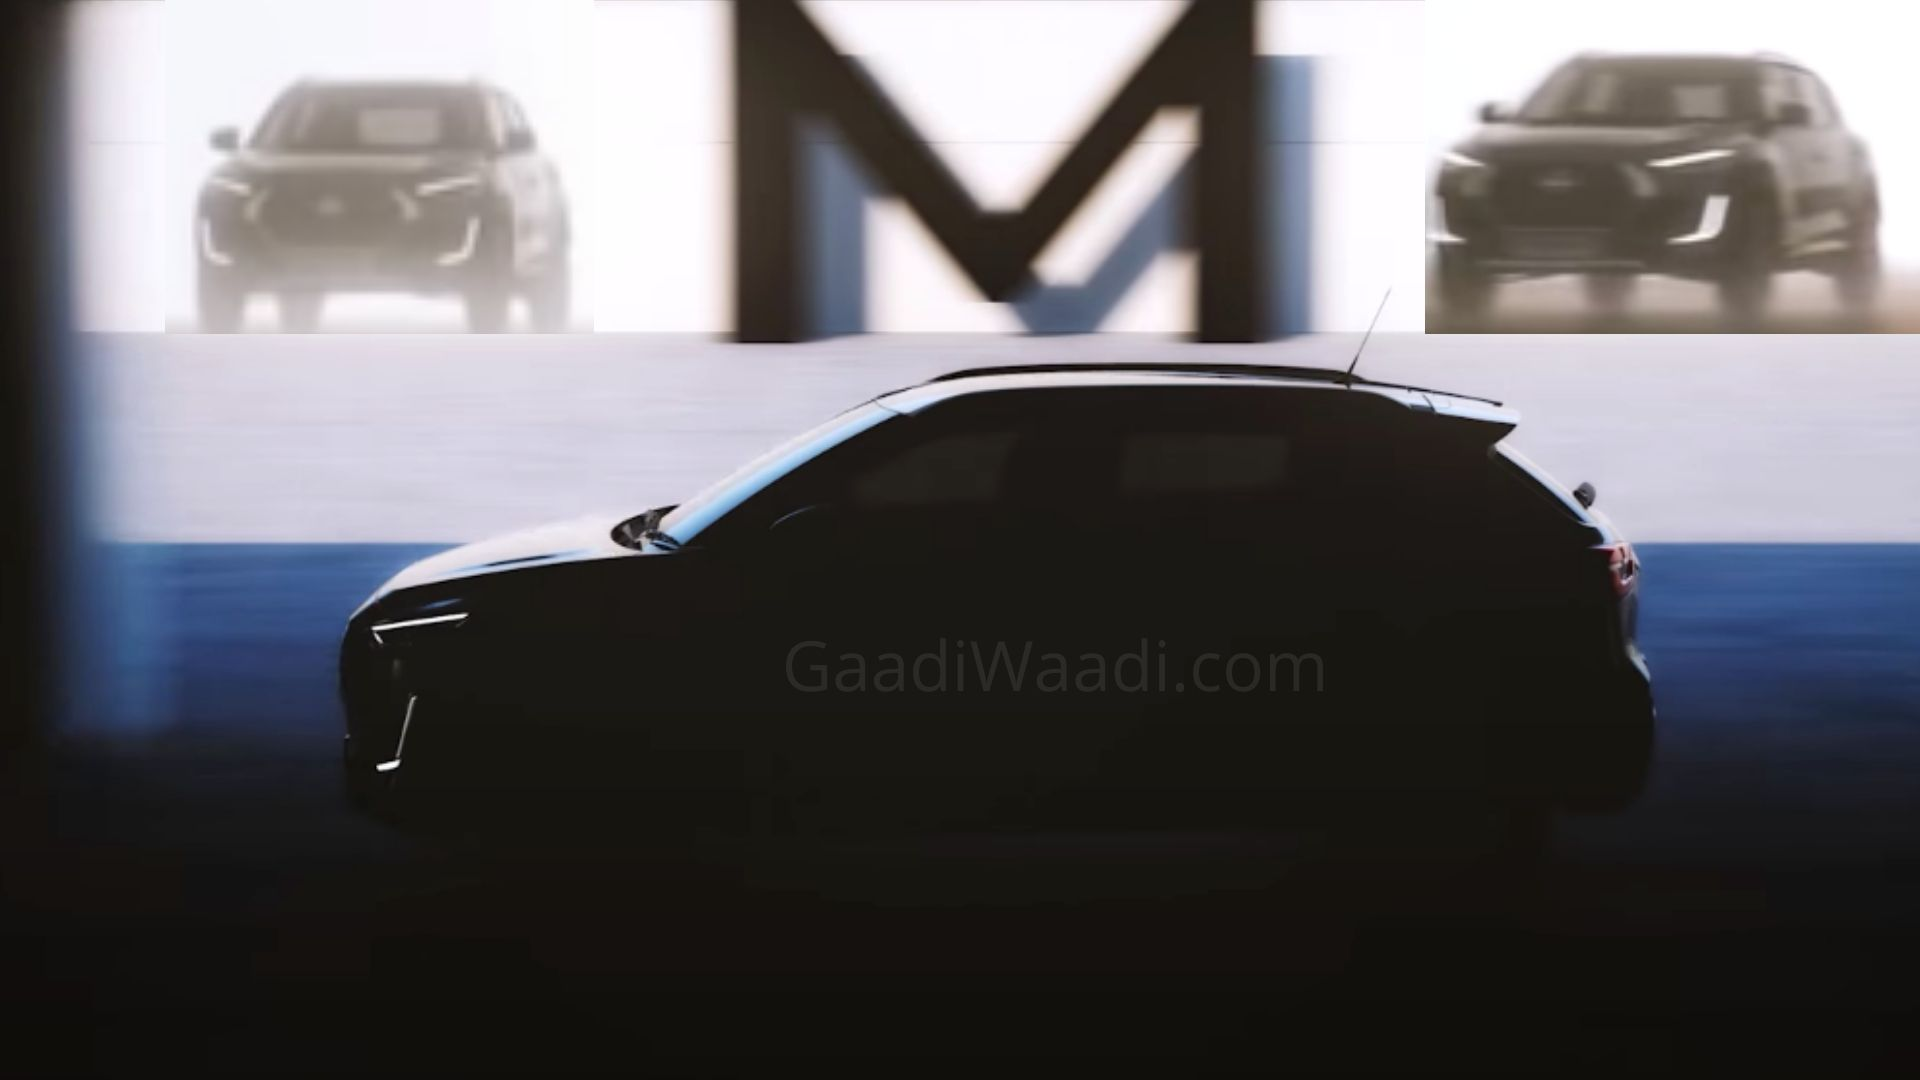 Upcoming Nissan Magnite SUV Teased Again Ahead Of India Launch